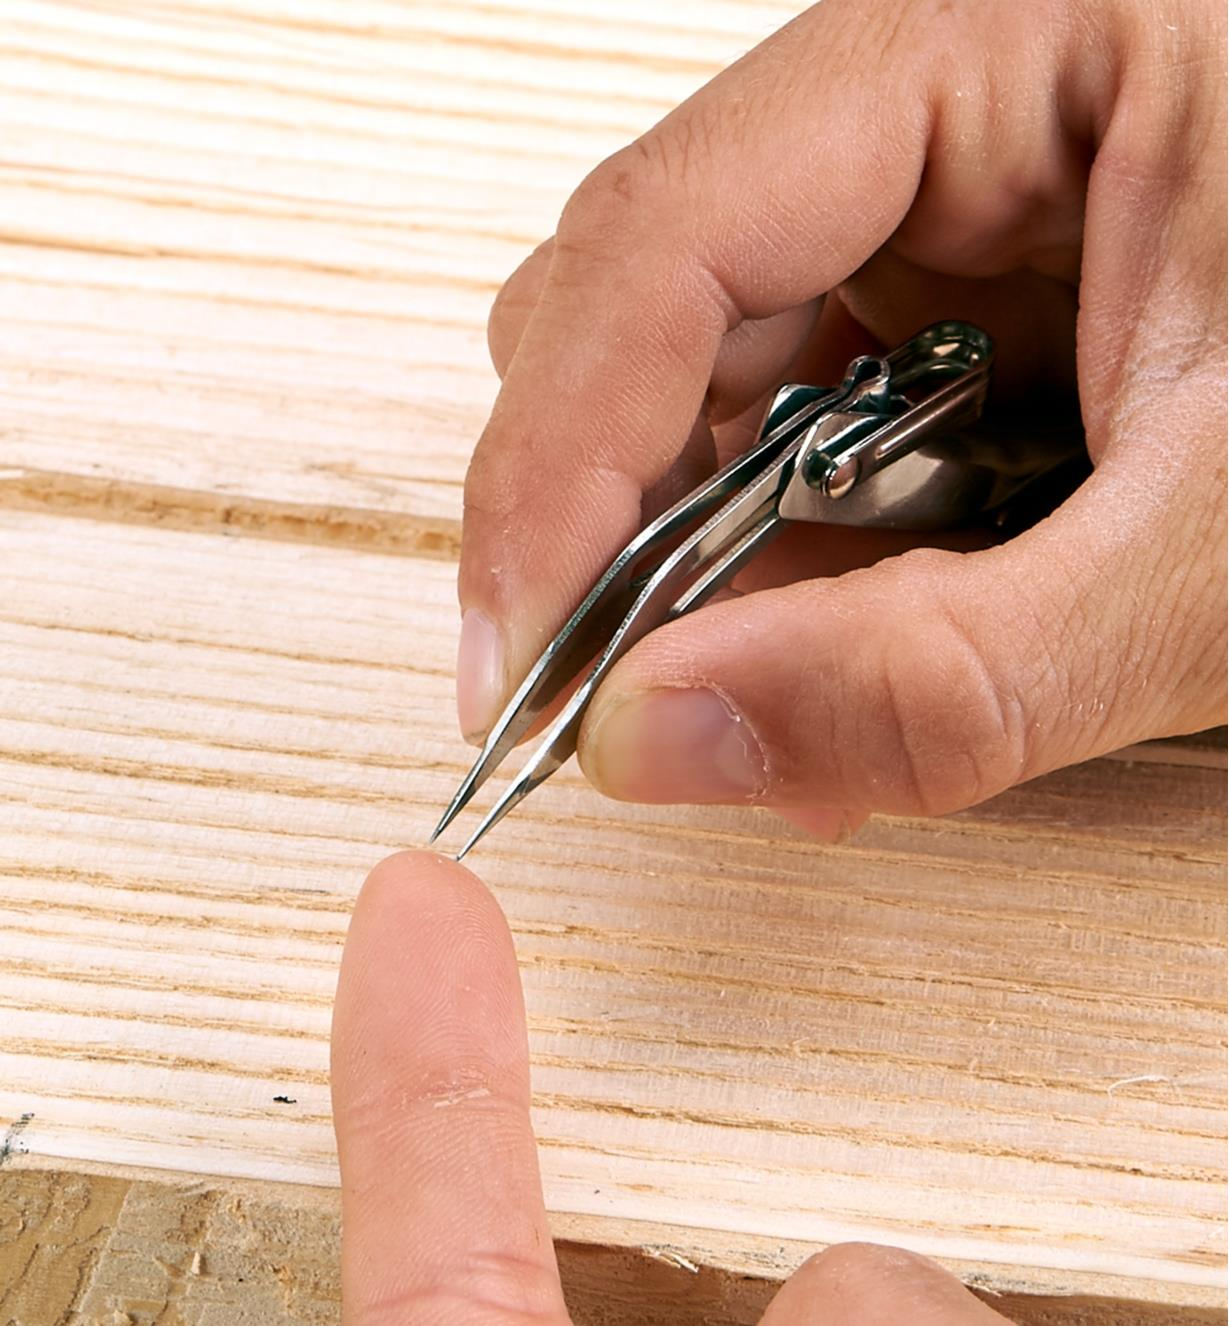 Removing a sliver from a finger with Fold-Out Tweezers